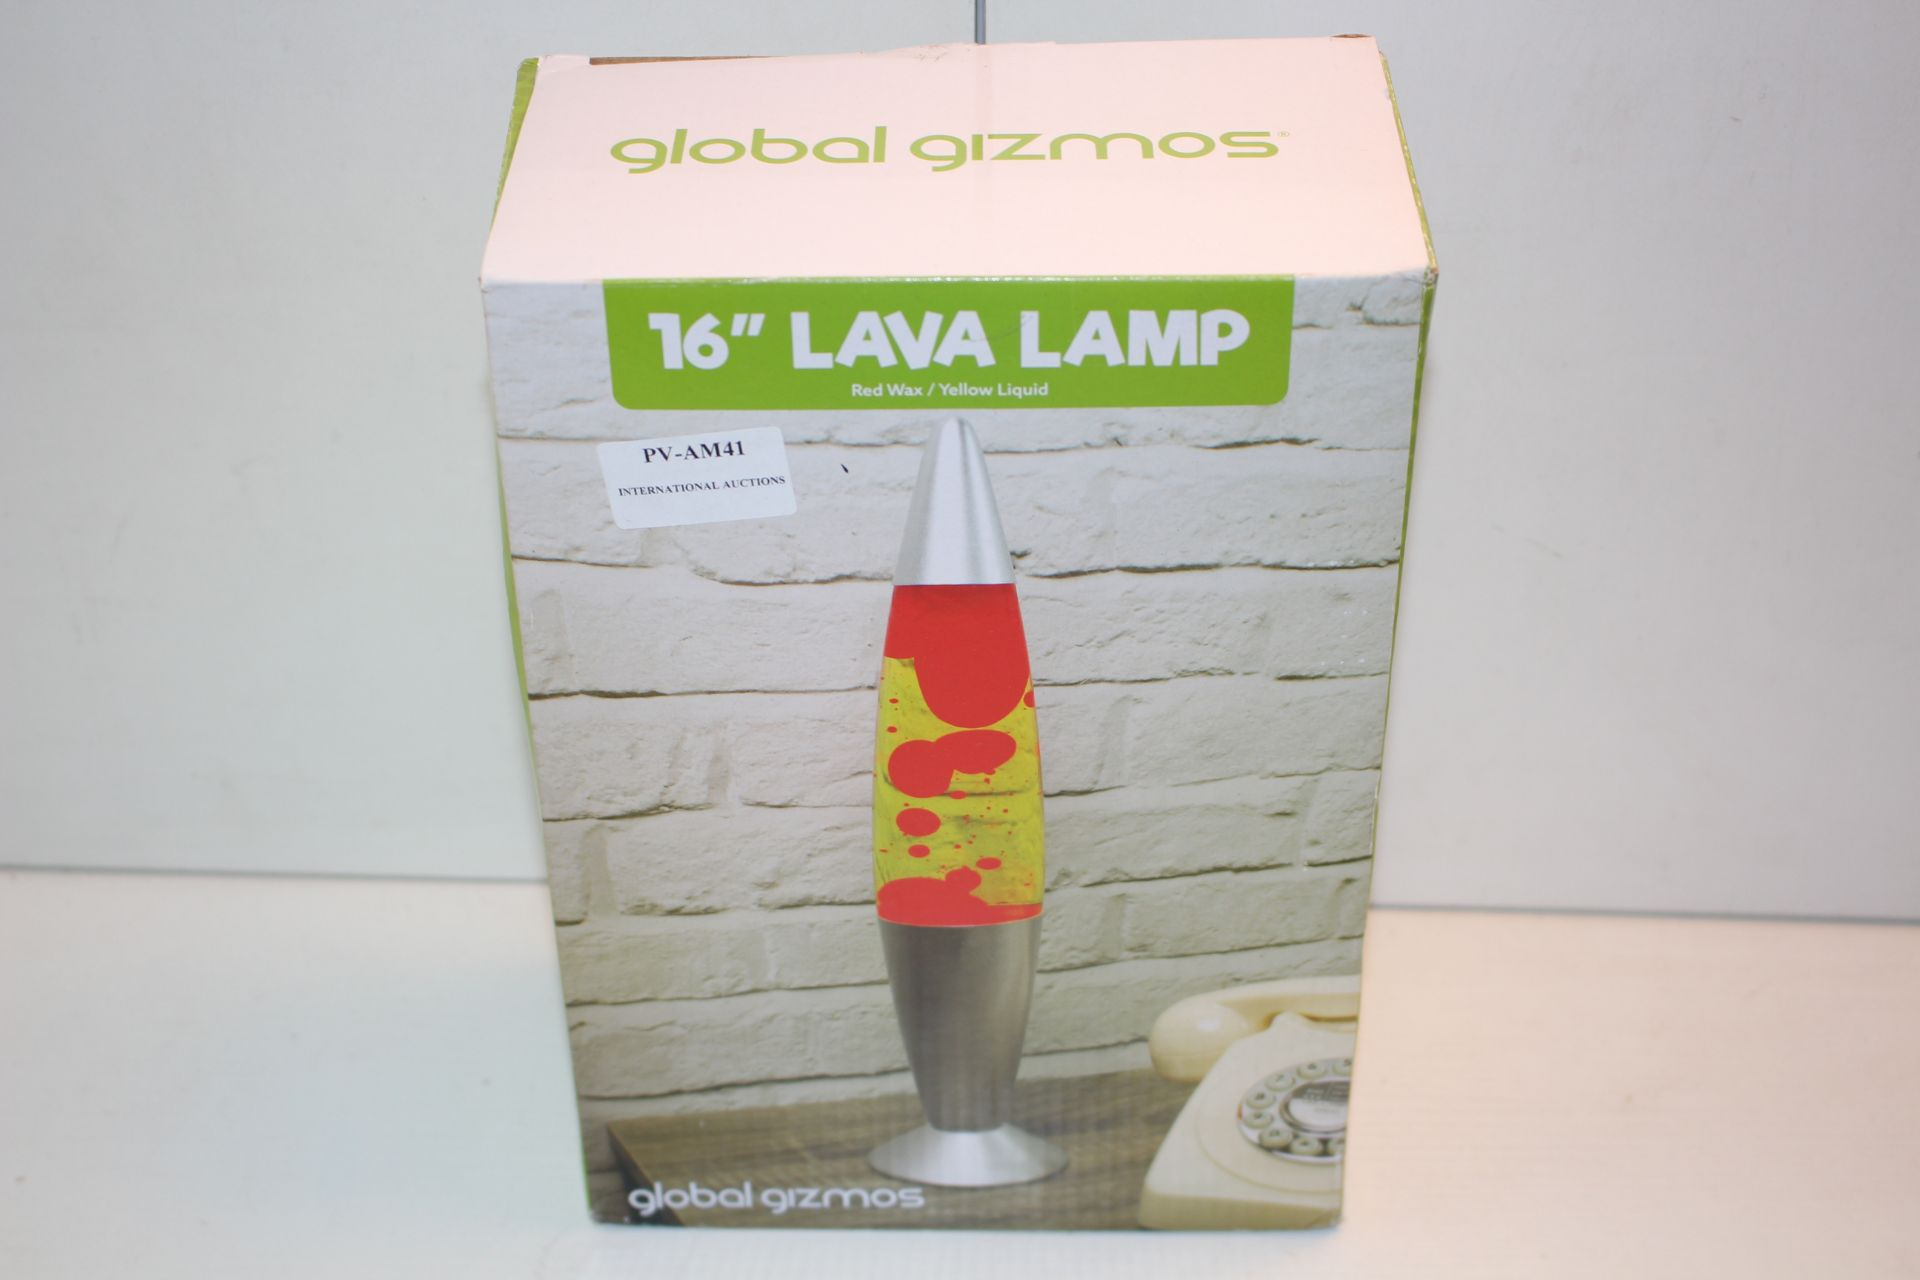 BOXED 16 INCH LAVA LAMP Condition ReportAppraisal Available on Request- All Items are Unchecked/